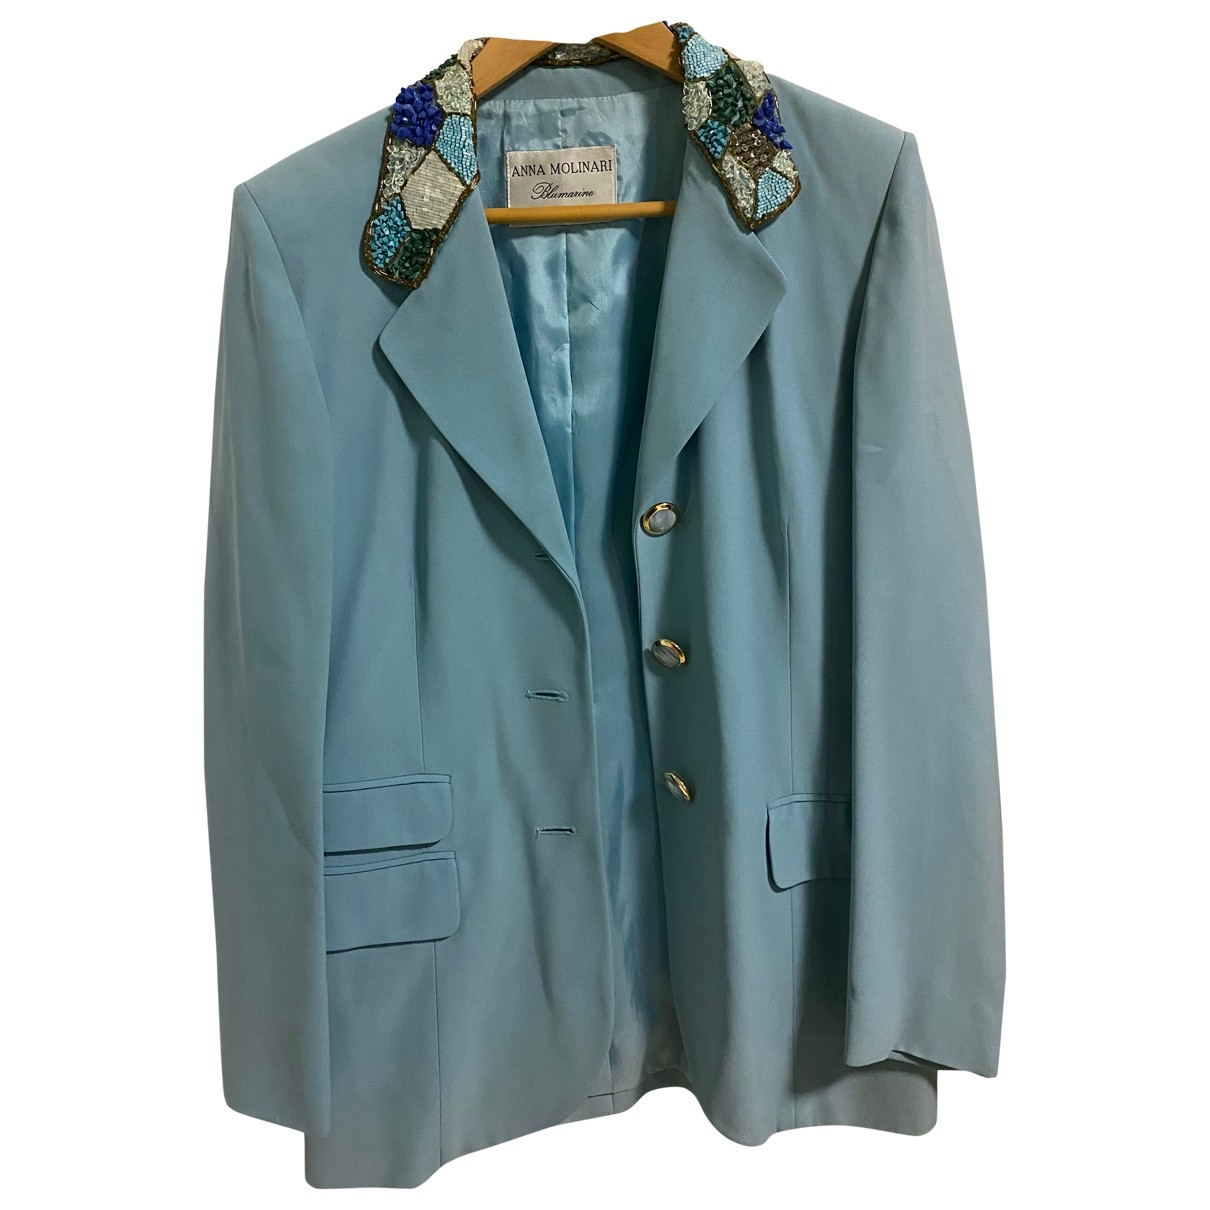 Anna Molinari \N Turquoise jacket for Women 46 IT